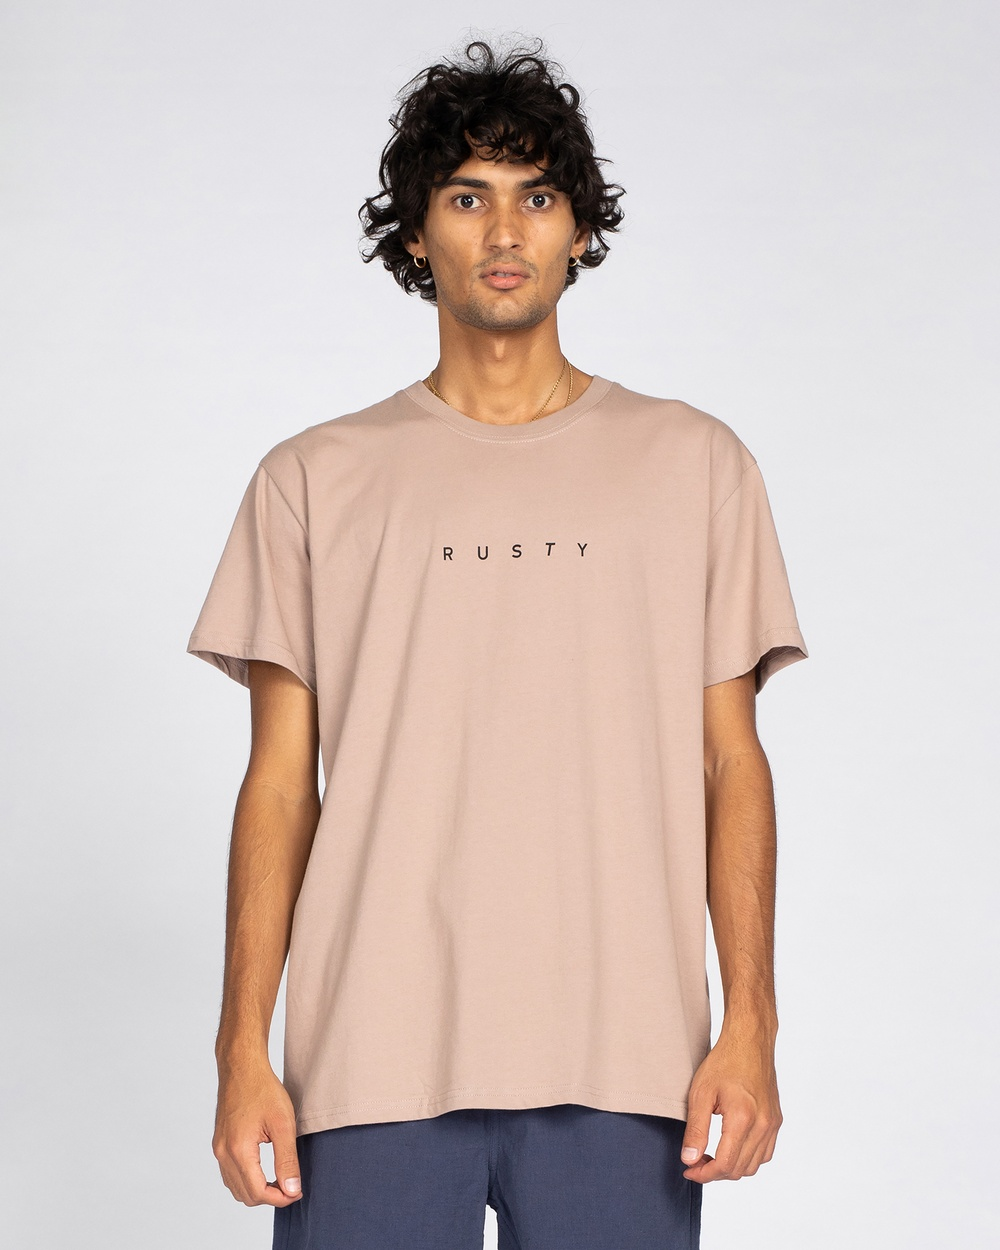 Rusty - Short Cut Short Sleeve Tee - T-Shirts & Singlets (MSH) Short Cut Short Sleeve Tee